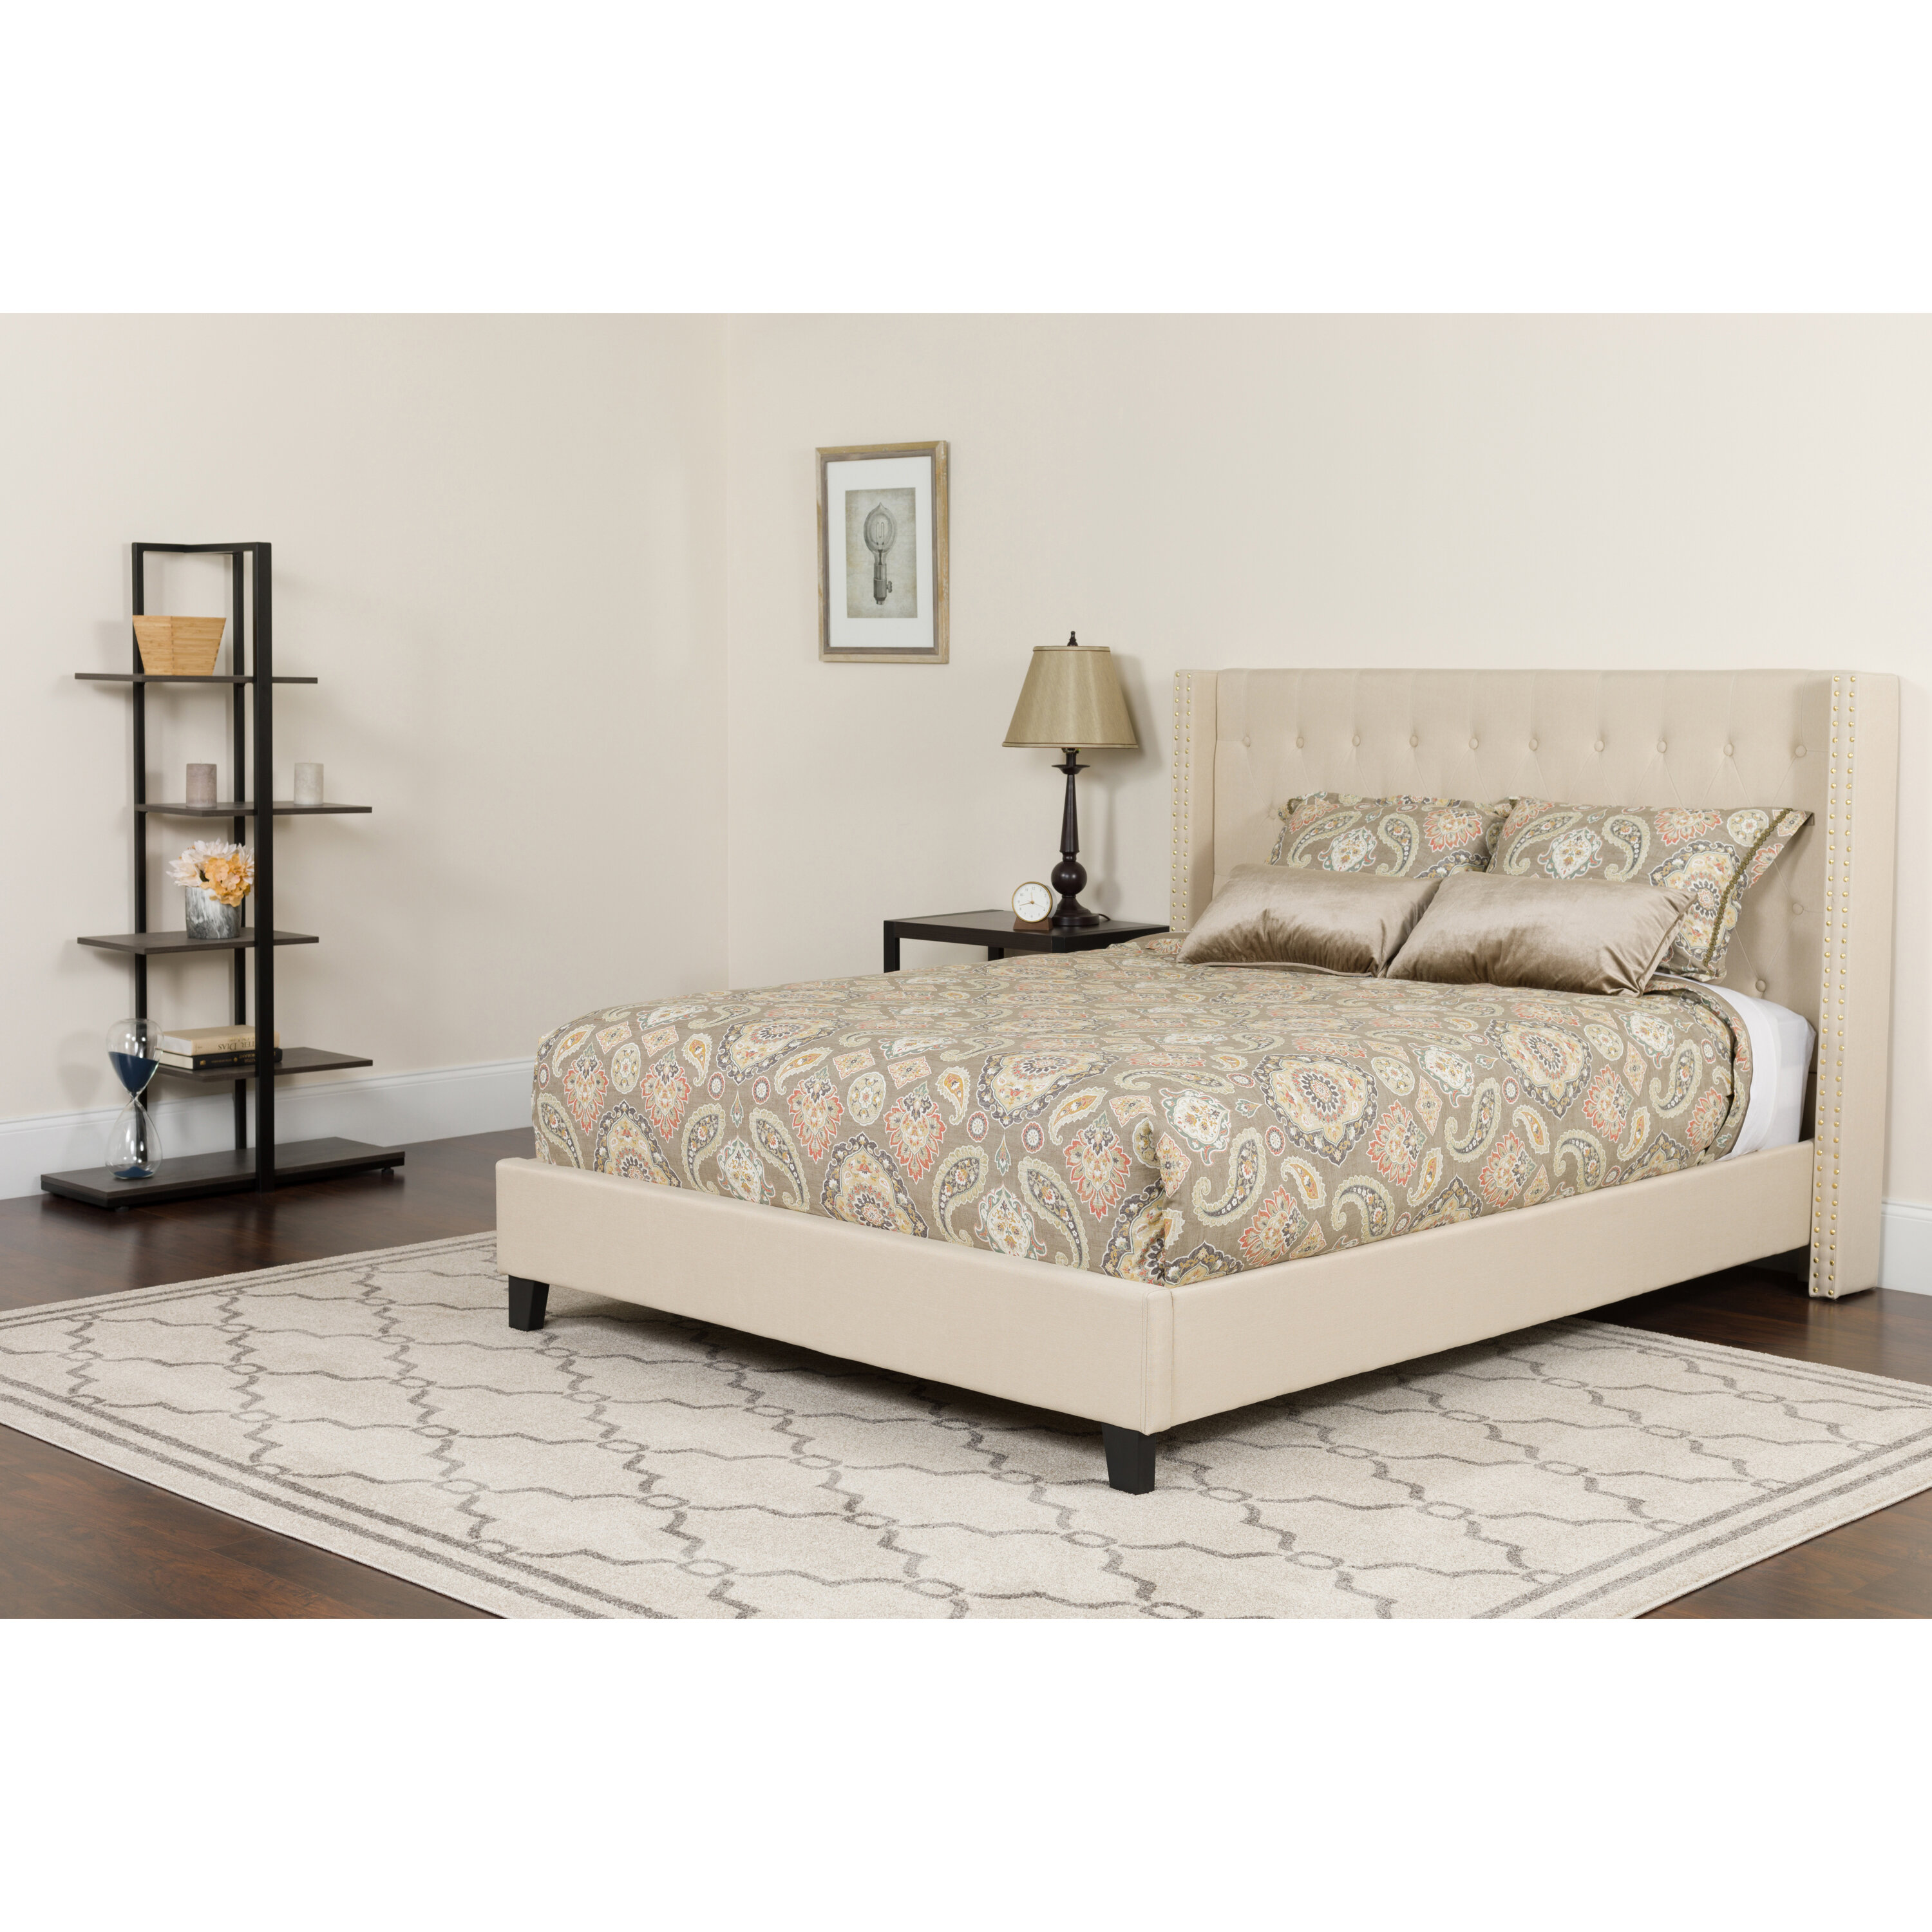 Alcott Hill Konieczny Tufted Upholstered Platform Bed With Mattress Reviews Wayfair